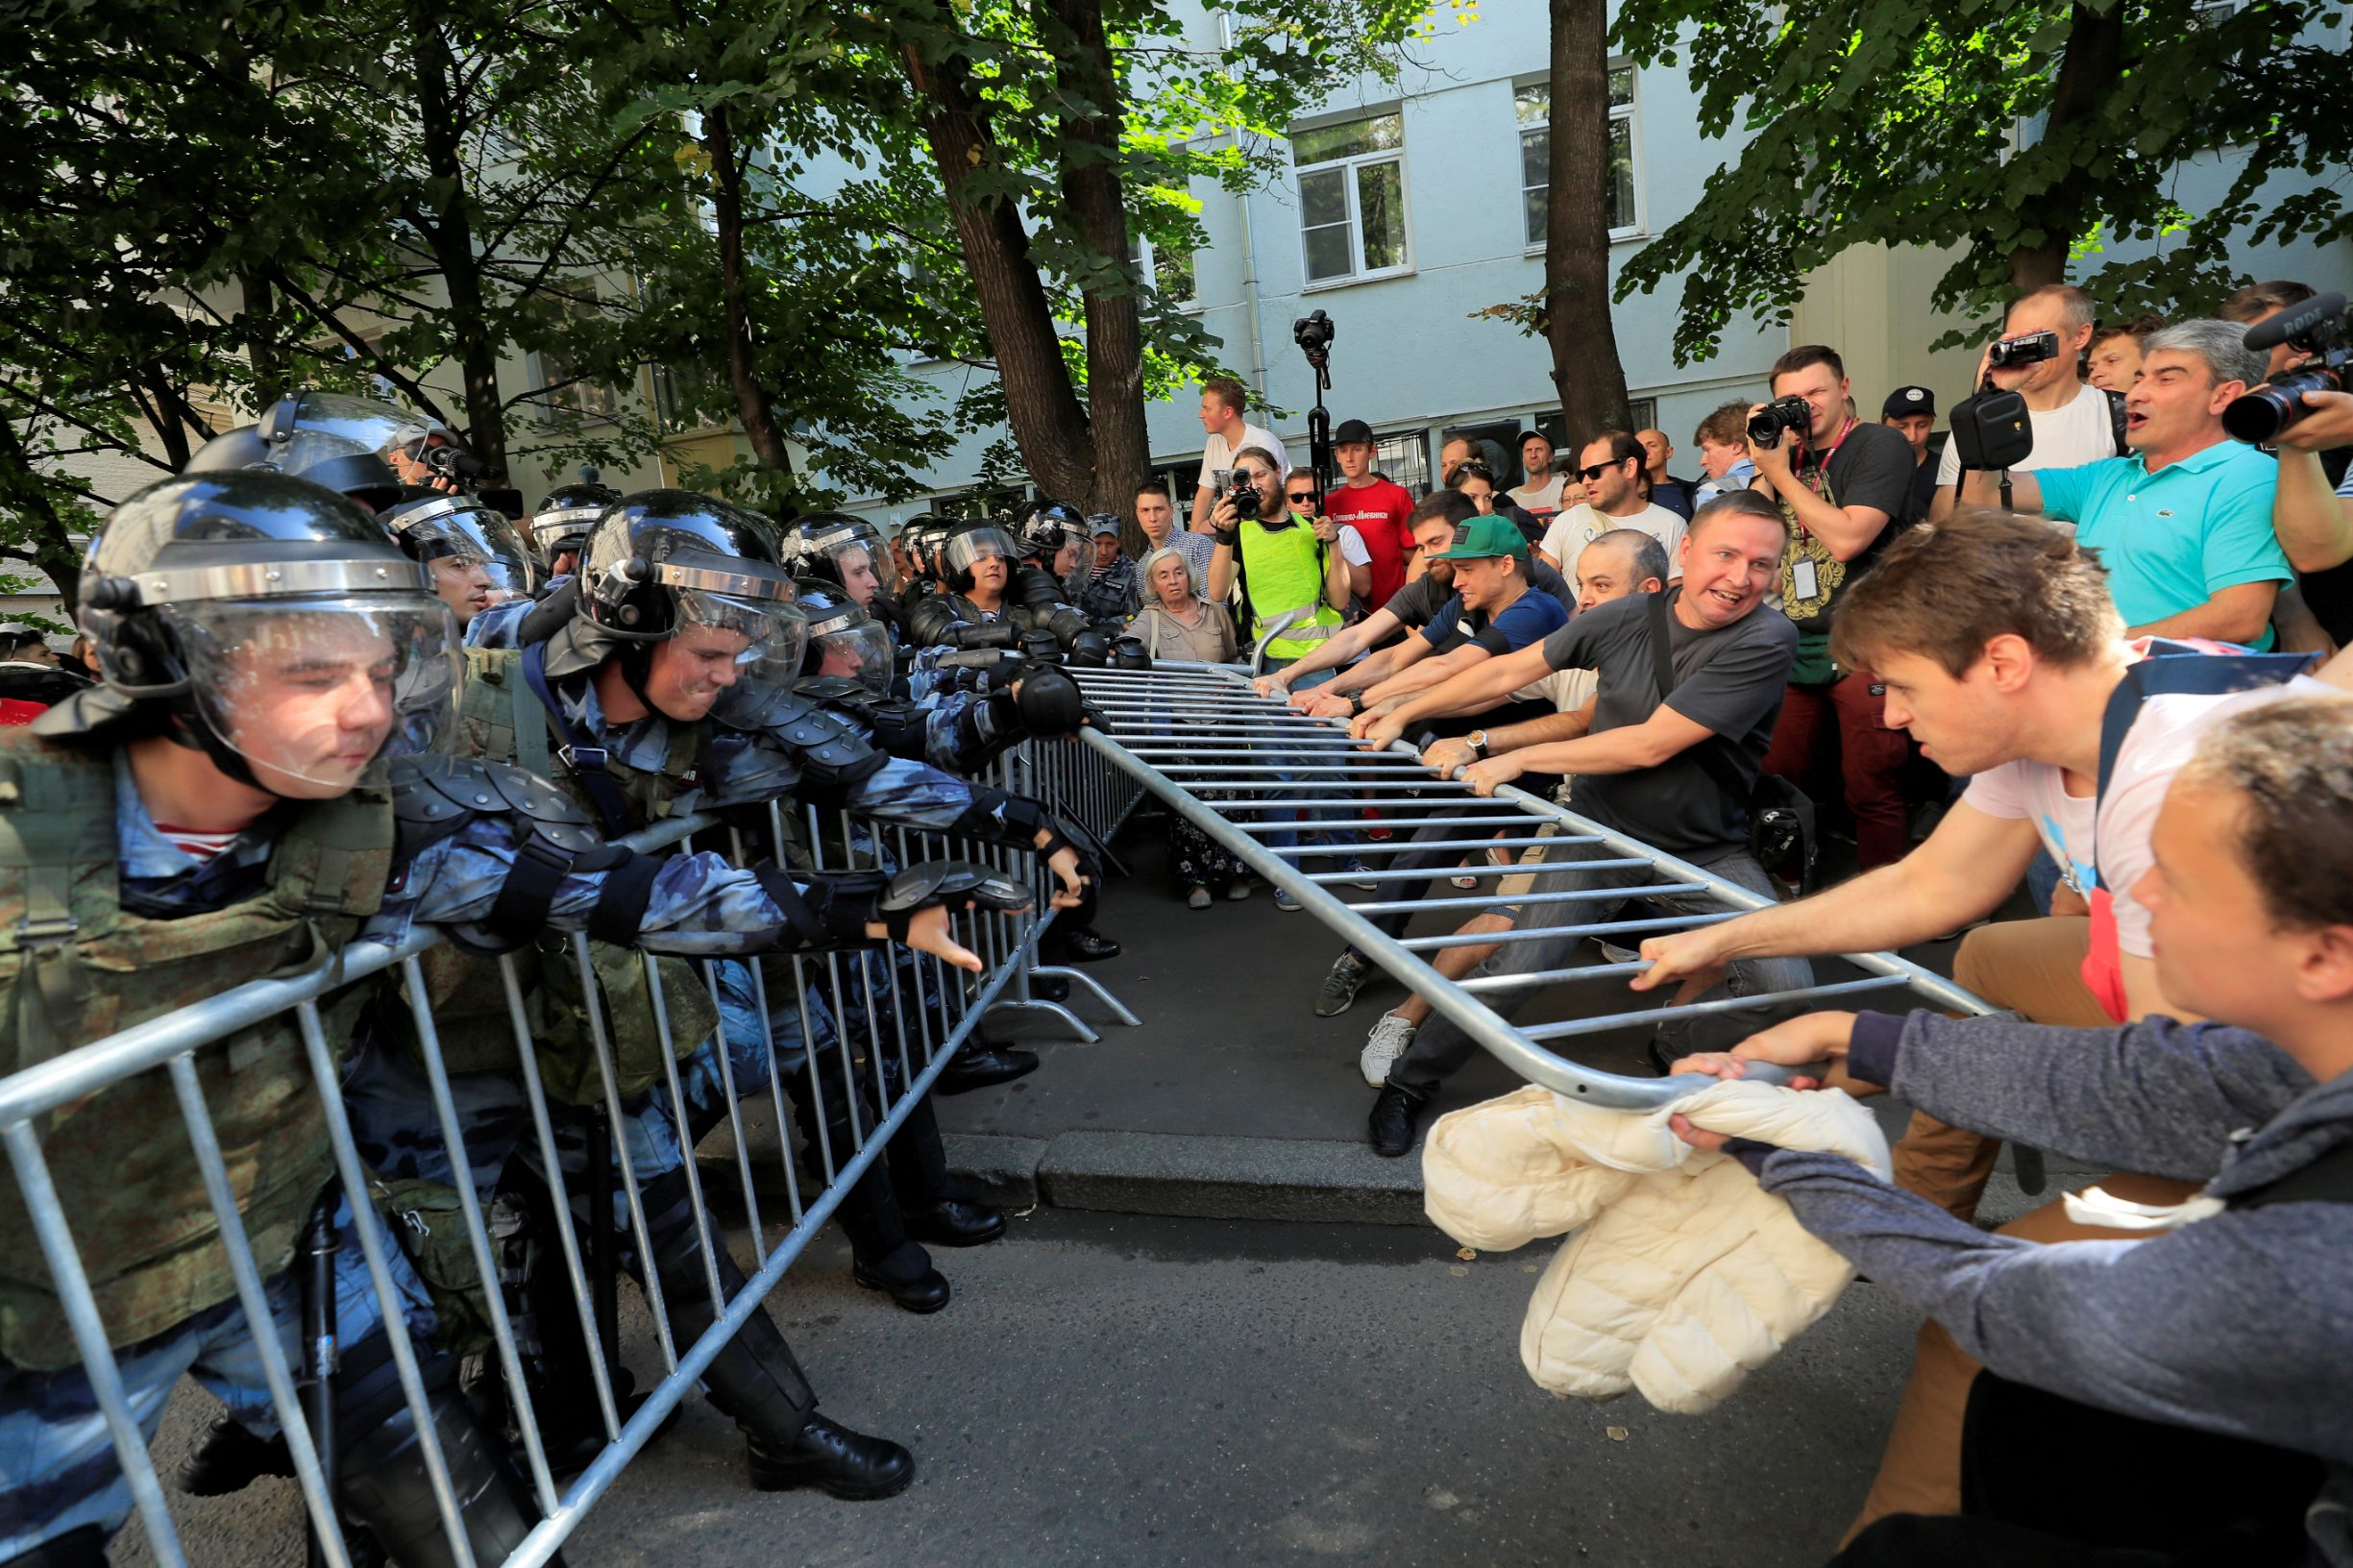 Protesters attempt to remove fences during a rally calling for opposition candidates to be registered for elections to Moscow City Duma, the capital's regional parliament, in Moscow, Russia July 27, 2019. REUTERS/Tatyana Makeyeva     TPX IMAGES OF THE DAY